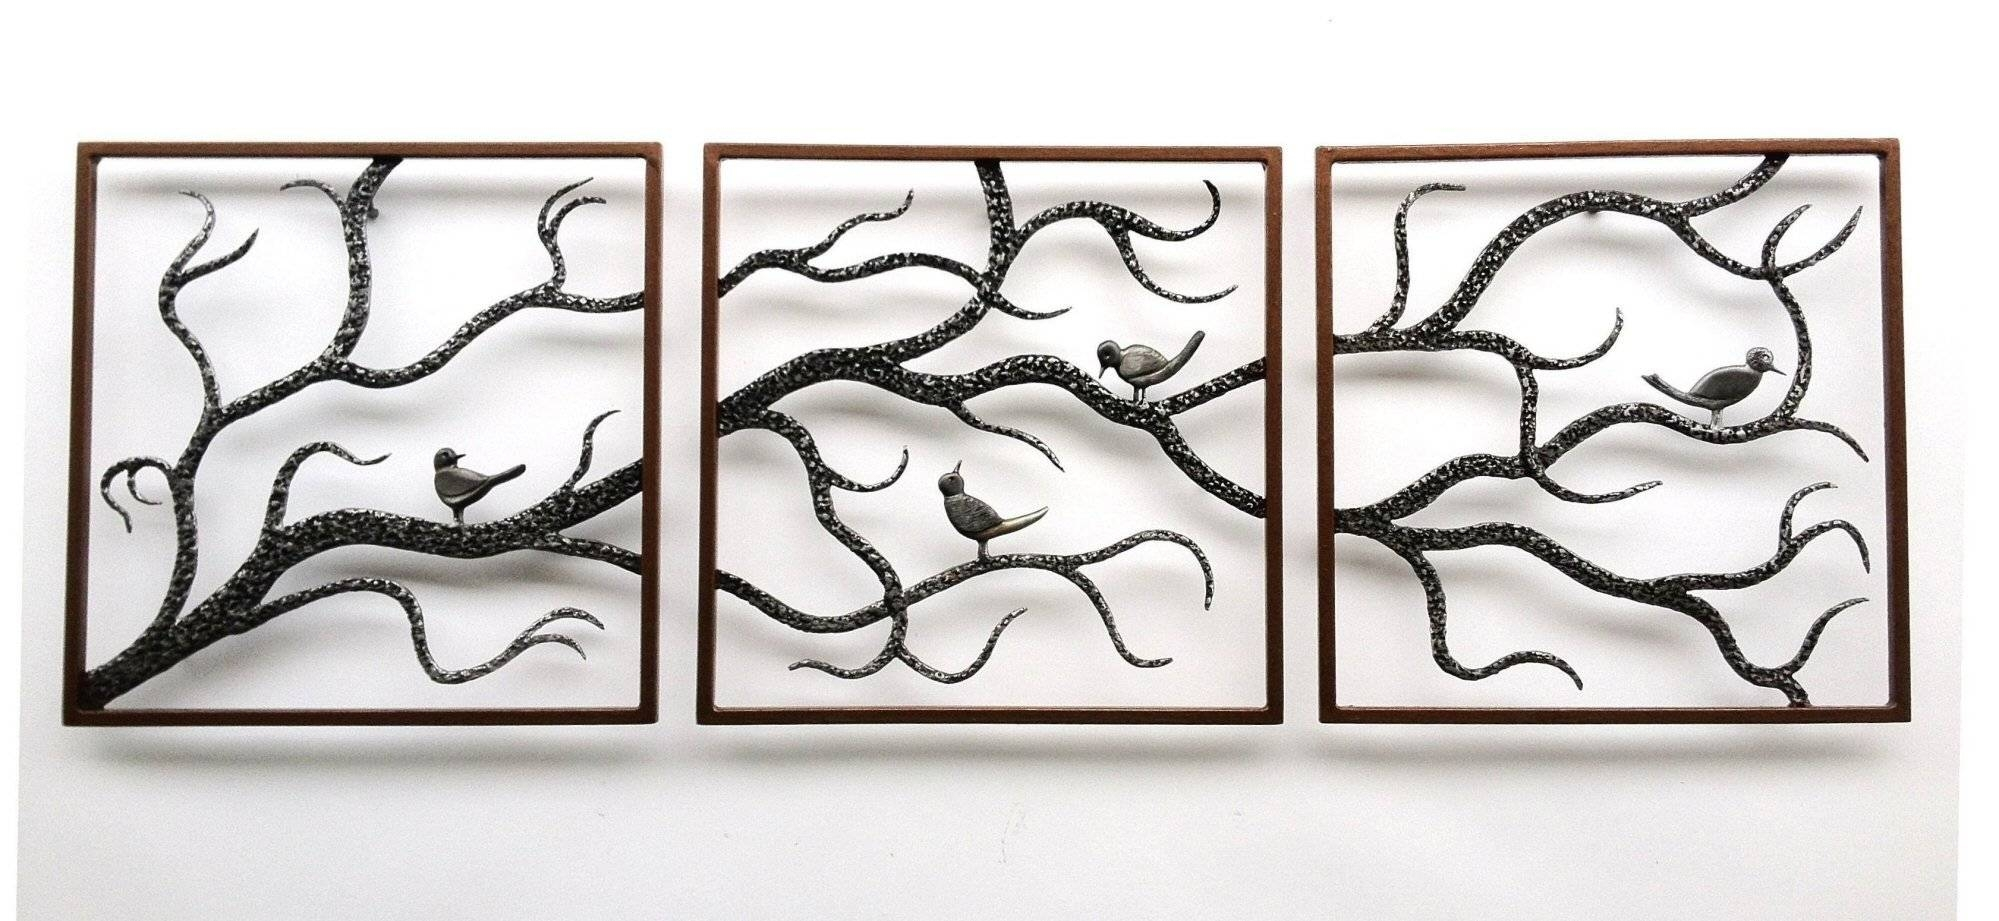 Wall Art Designs: Metal Wall Art Trees Birch Three Framed Cute Pertaining To Current Metal Wall Art Trees And Branches (View 4 of 18)